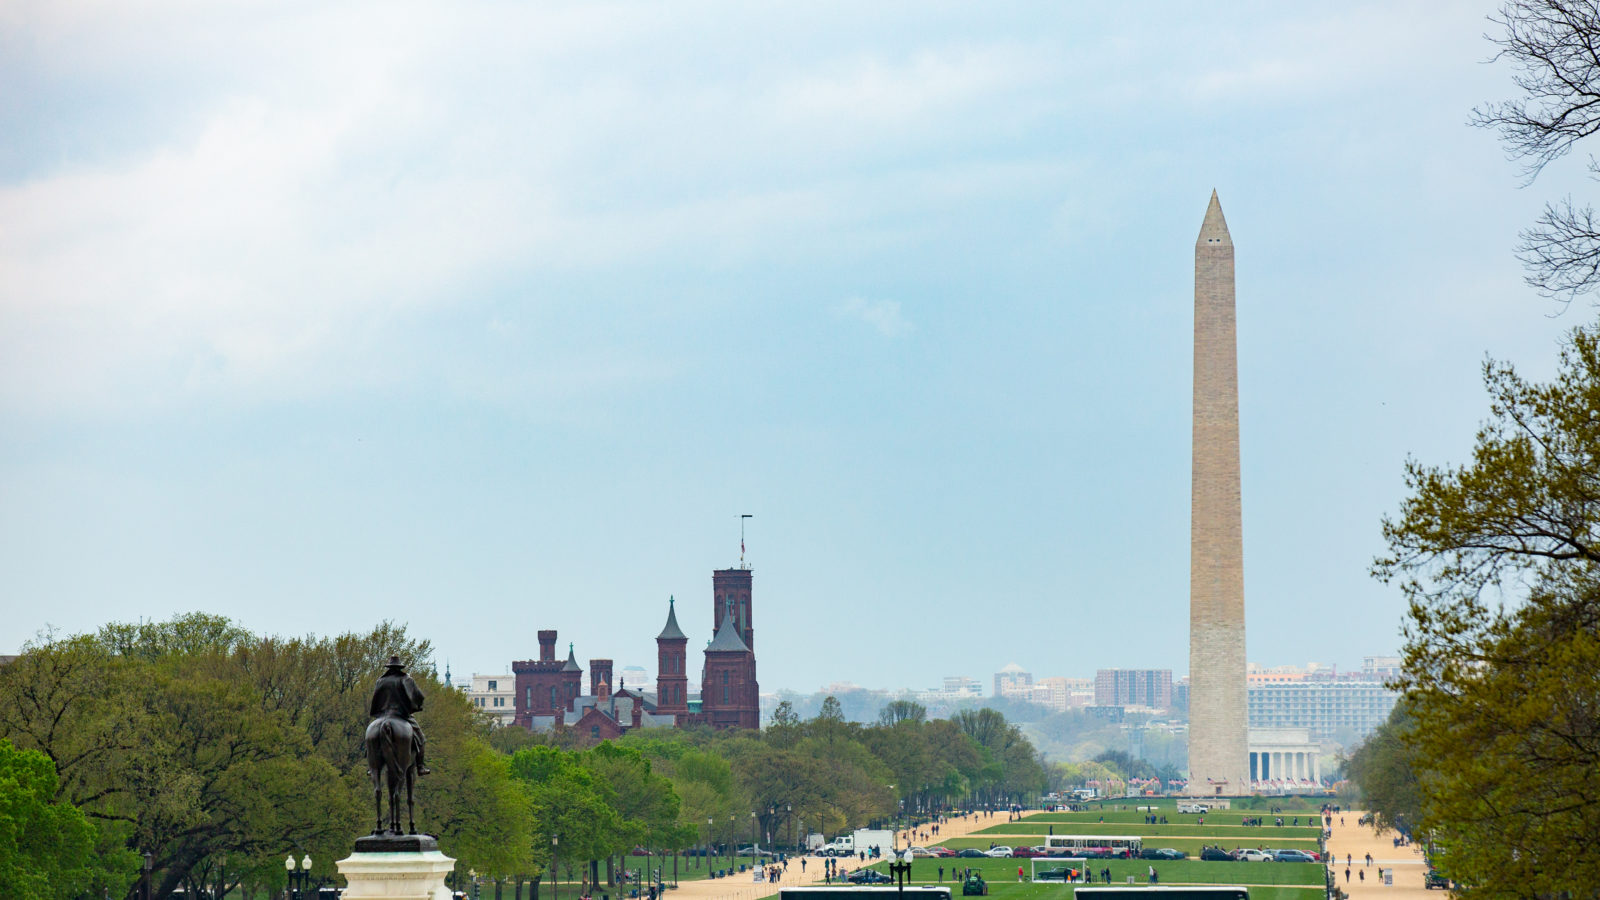 The Washington Monument towers over the National Mall.